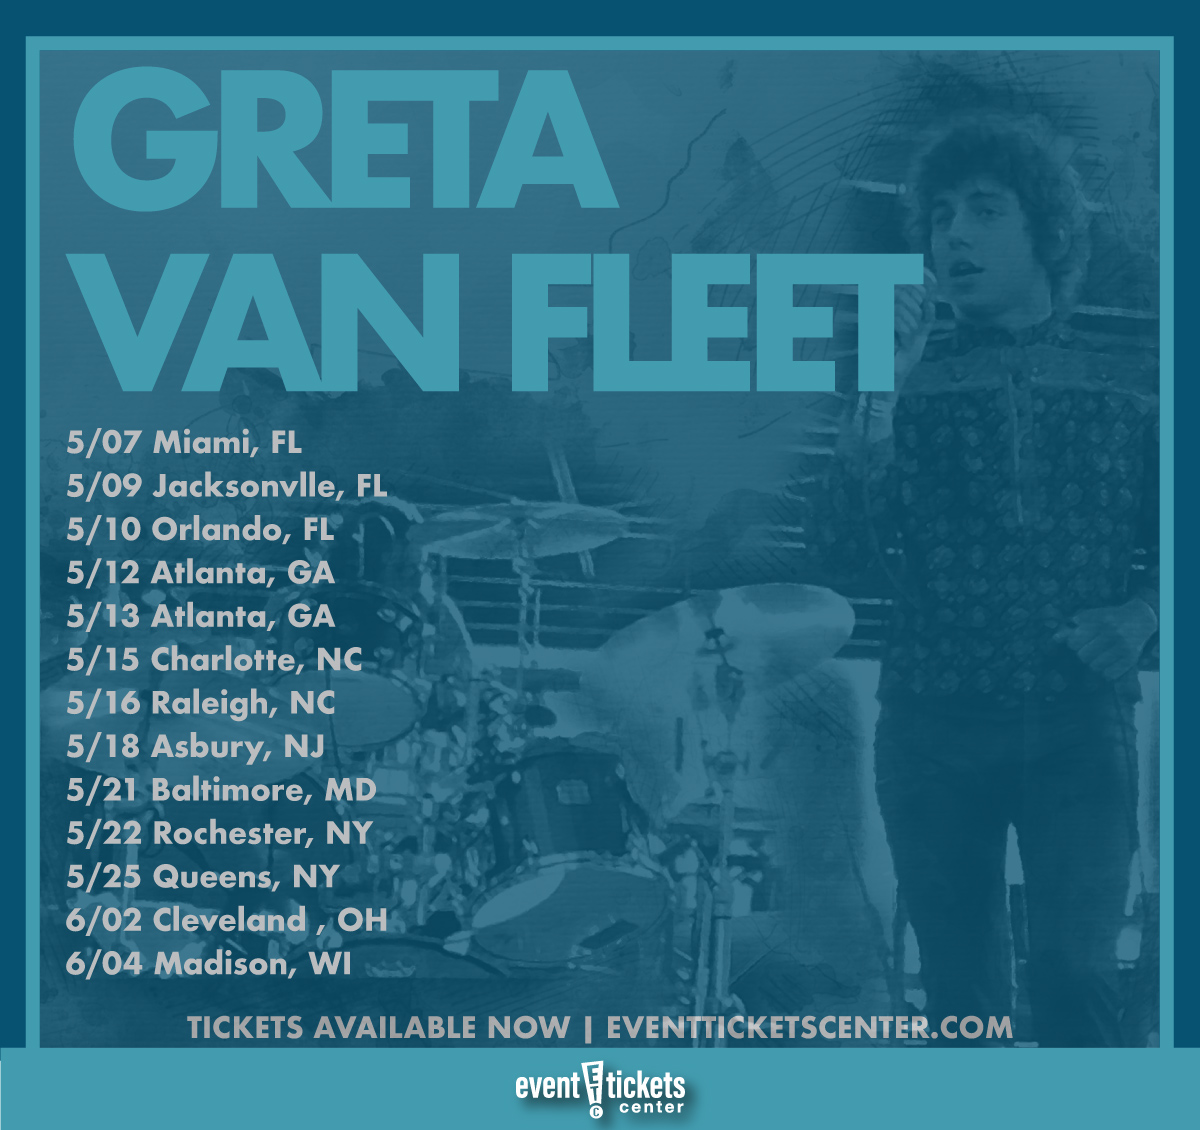 greta van fleet tour map